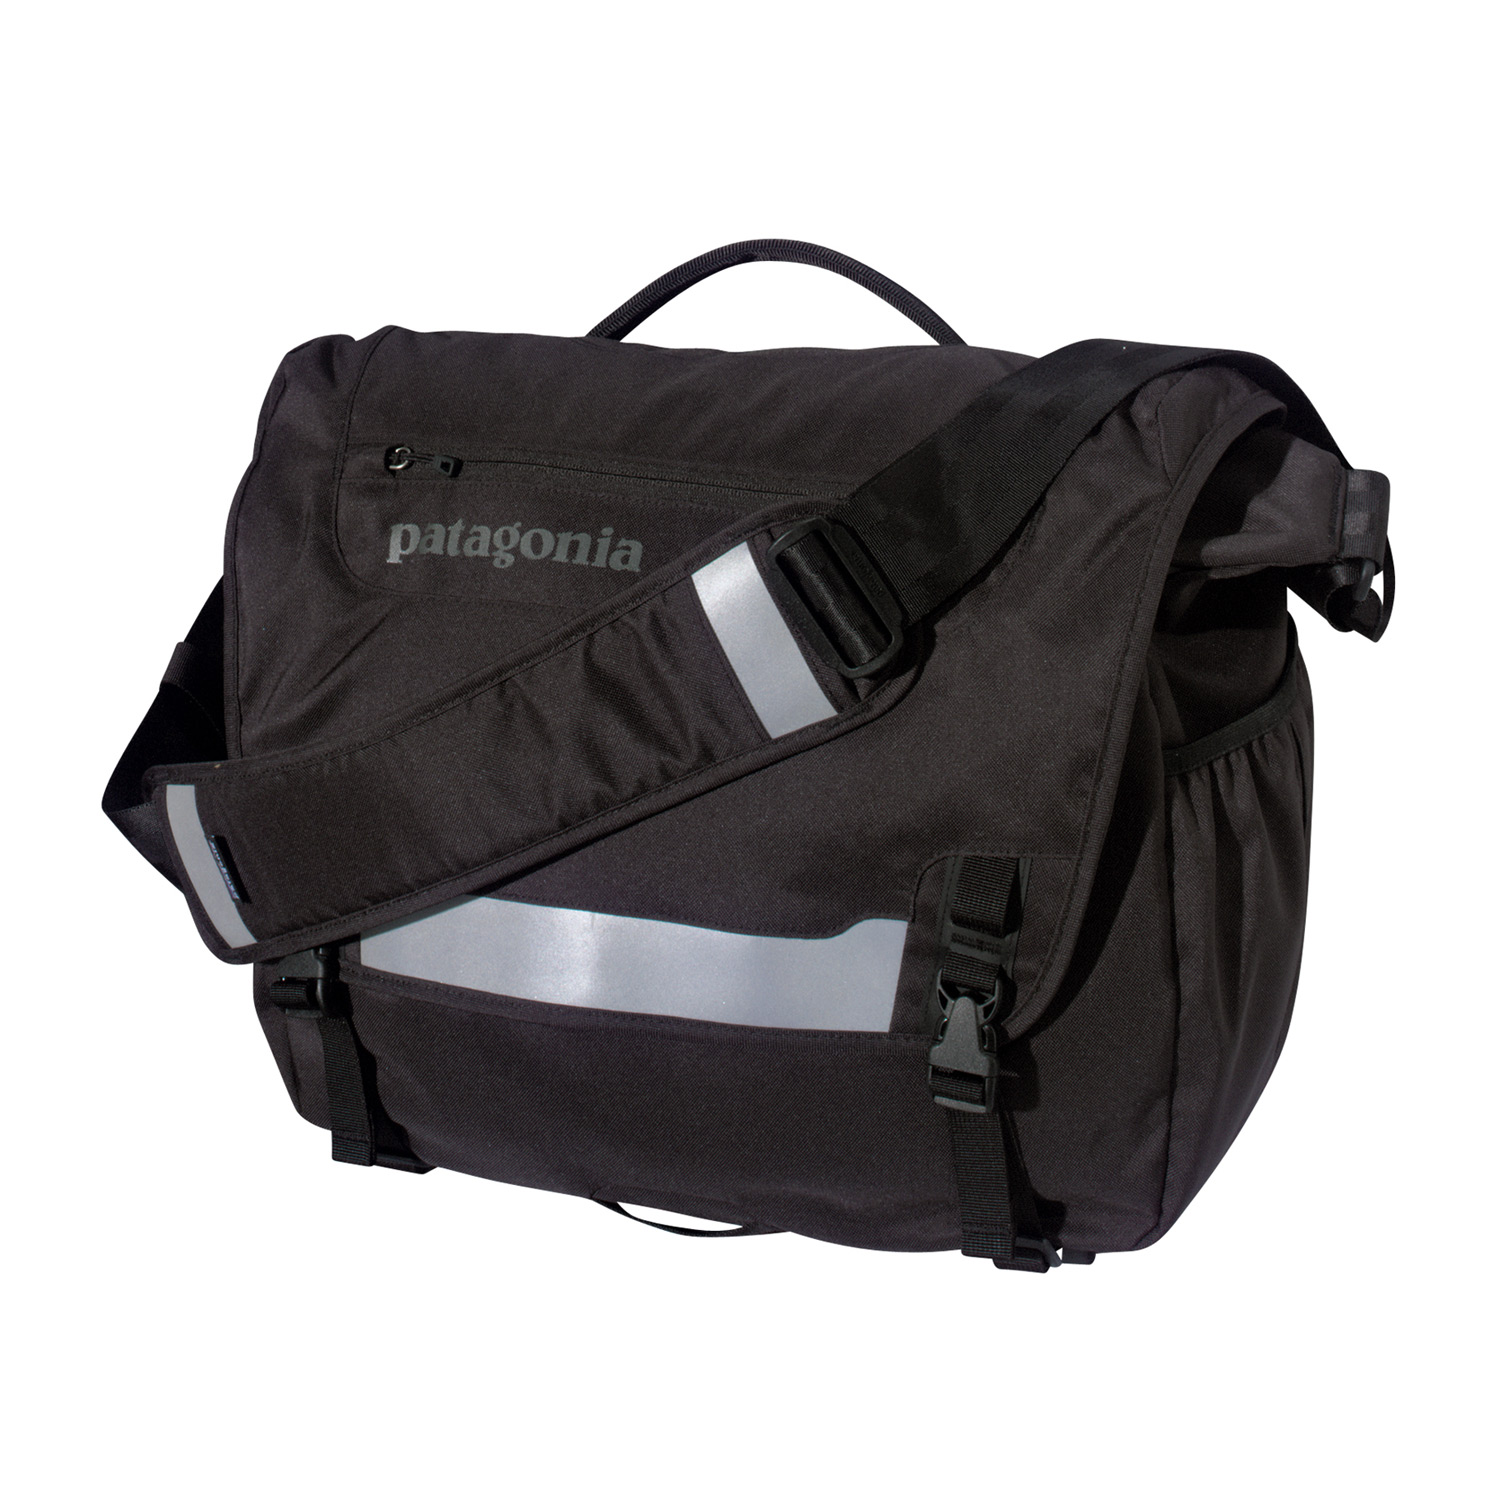 MTB Patagonia's best-selling courier bag made of recycled polyesterKey Features of the Patagonia Half Mass Bag: Main flap opens to largest compartment, which houses one drop pocket, one mesh pocket, one padded electronics pocket, three slots for pens and a discrete and secure zippered pocket; zippered pocket on flap has moisture-shedding reverse coil zipper Padded computer sleeve is raised off the ground and will accommodate up to a 17? laptop. The sleeve secures with a buckle and strap Front flap features improved reflective piping and webbing bike-light mount for visibility at night Side mounted exterior water bottle pocket Interior drop pocket secures with hook and loop tab for quick access to boarding passes, magazines or newspapers Fully adjustable shoulder strap with floating pad, three point adjustable stability strap and top side carrying handle 22 L / 1343 cu in (1 lb 13.4 oz) 833 g Fabric: Body: 8.4-oz 600-denier 100% recycled polyester. Lining: 3.3-oz 200-denier polyester. Both with a polyurethane coating - $61.95